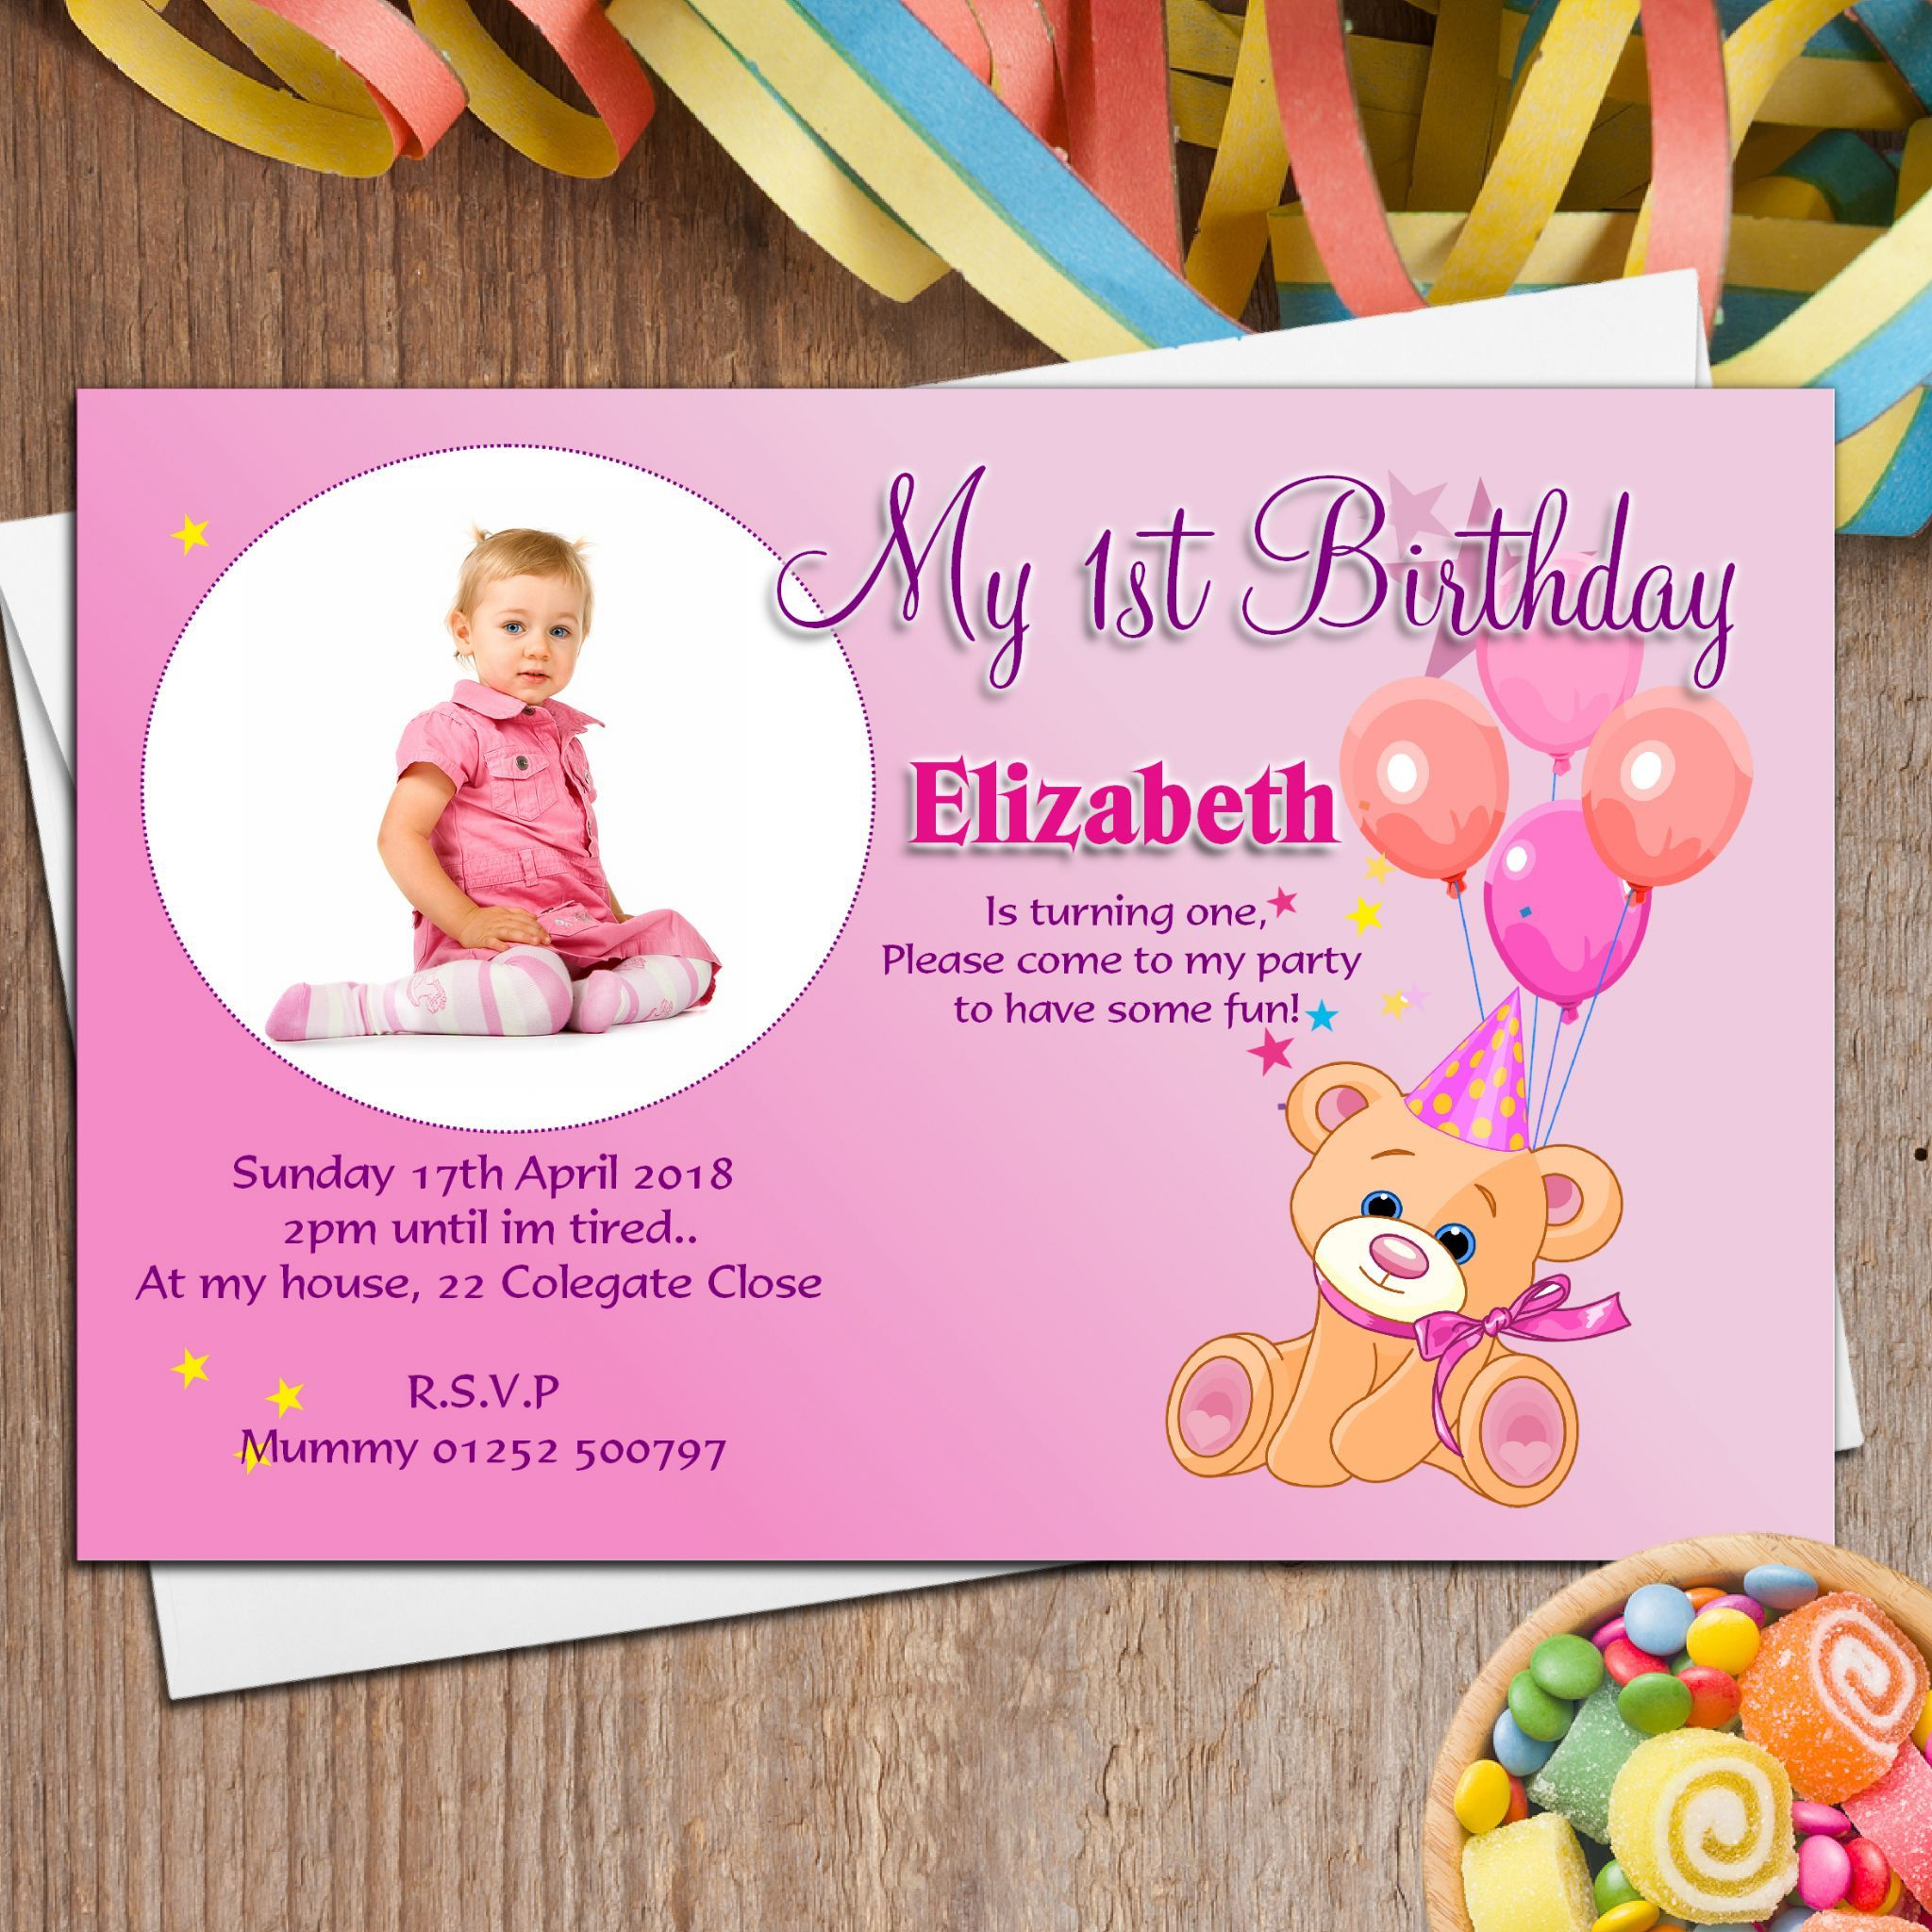 1st Birthday Invitation Cards For Baby Boy In India Dnyaneshwar